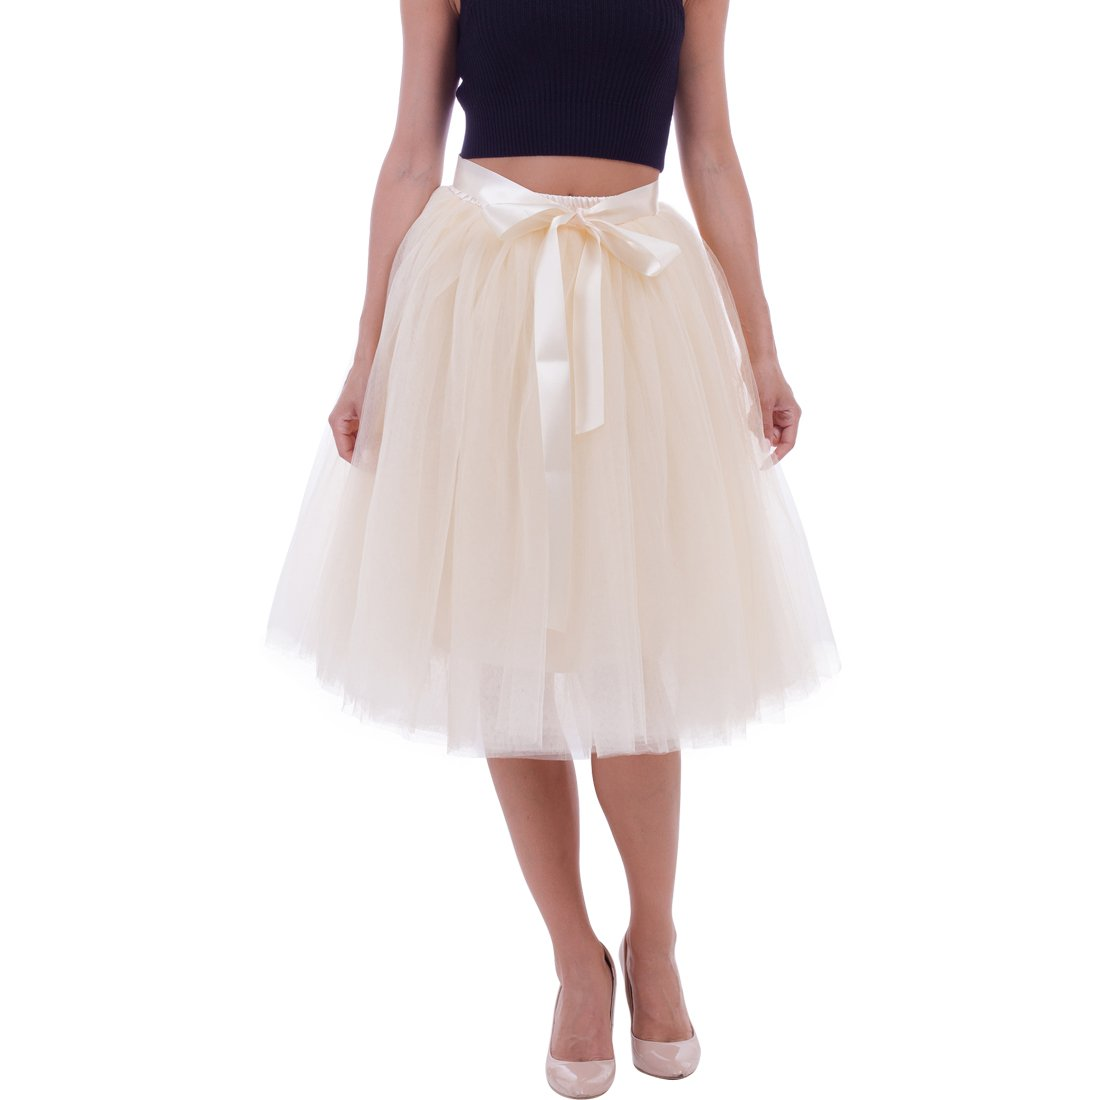 b59b04a25d Handmade with high quality tulle fabric ( 6 Layers of tulle + 1 layer  lining = 7 layers in total) Adjustable Waist: 65-110cm/25.5-43.3inches, the  waist can ...